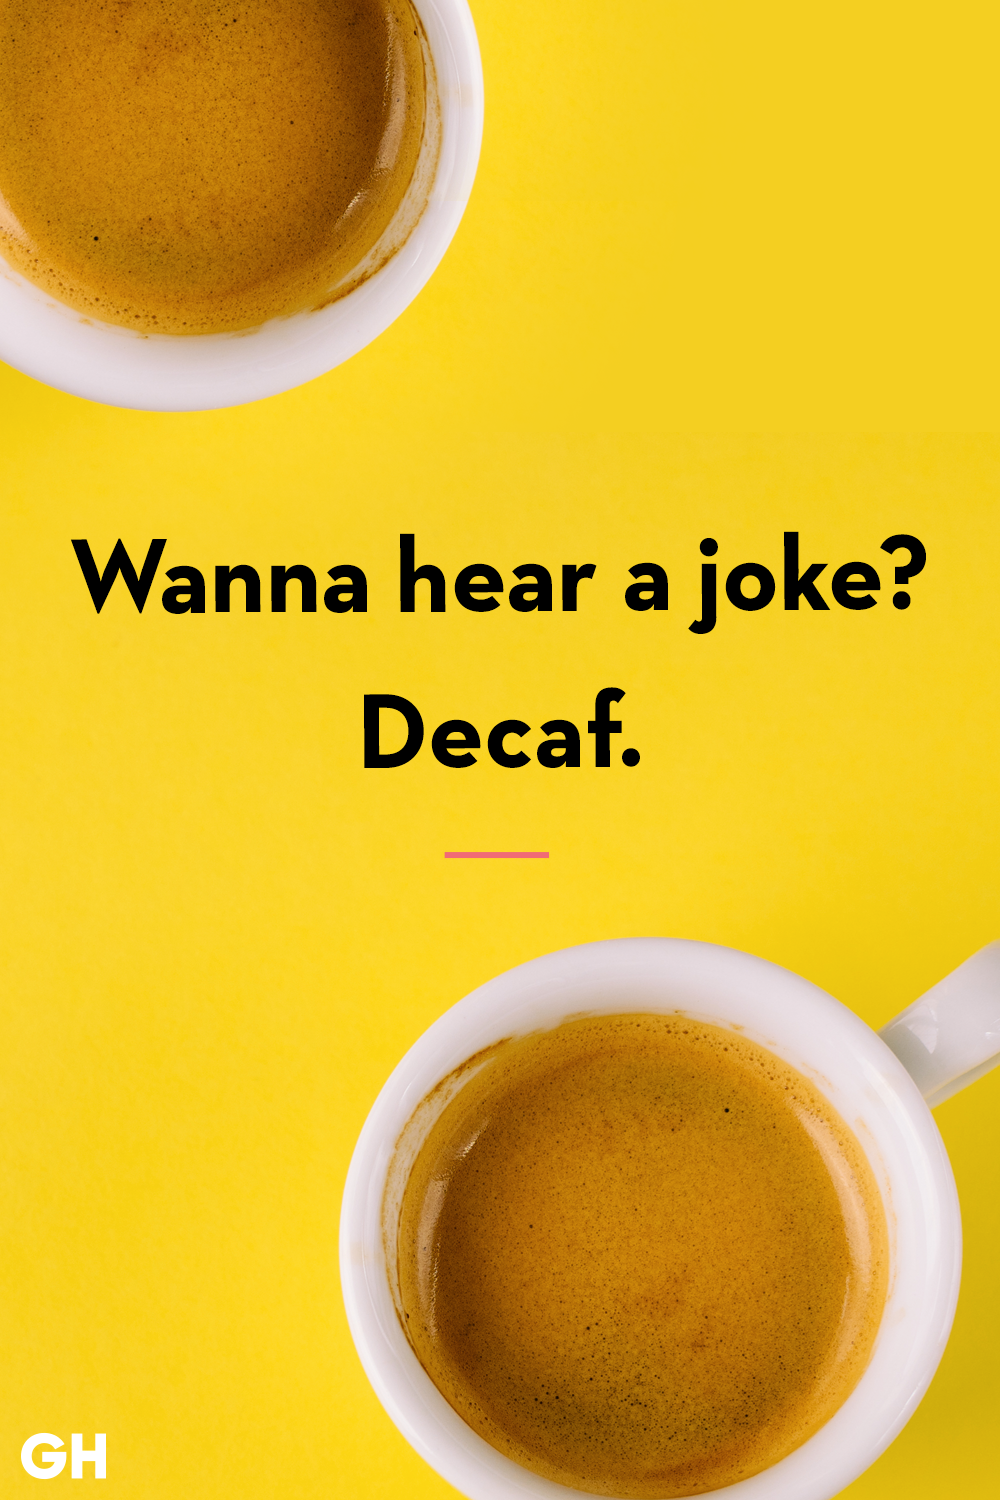 40 Funny Coffee Quotes - Best Coffee Quotes and Sayings